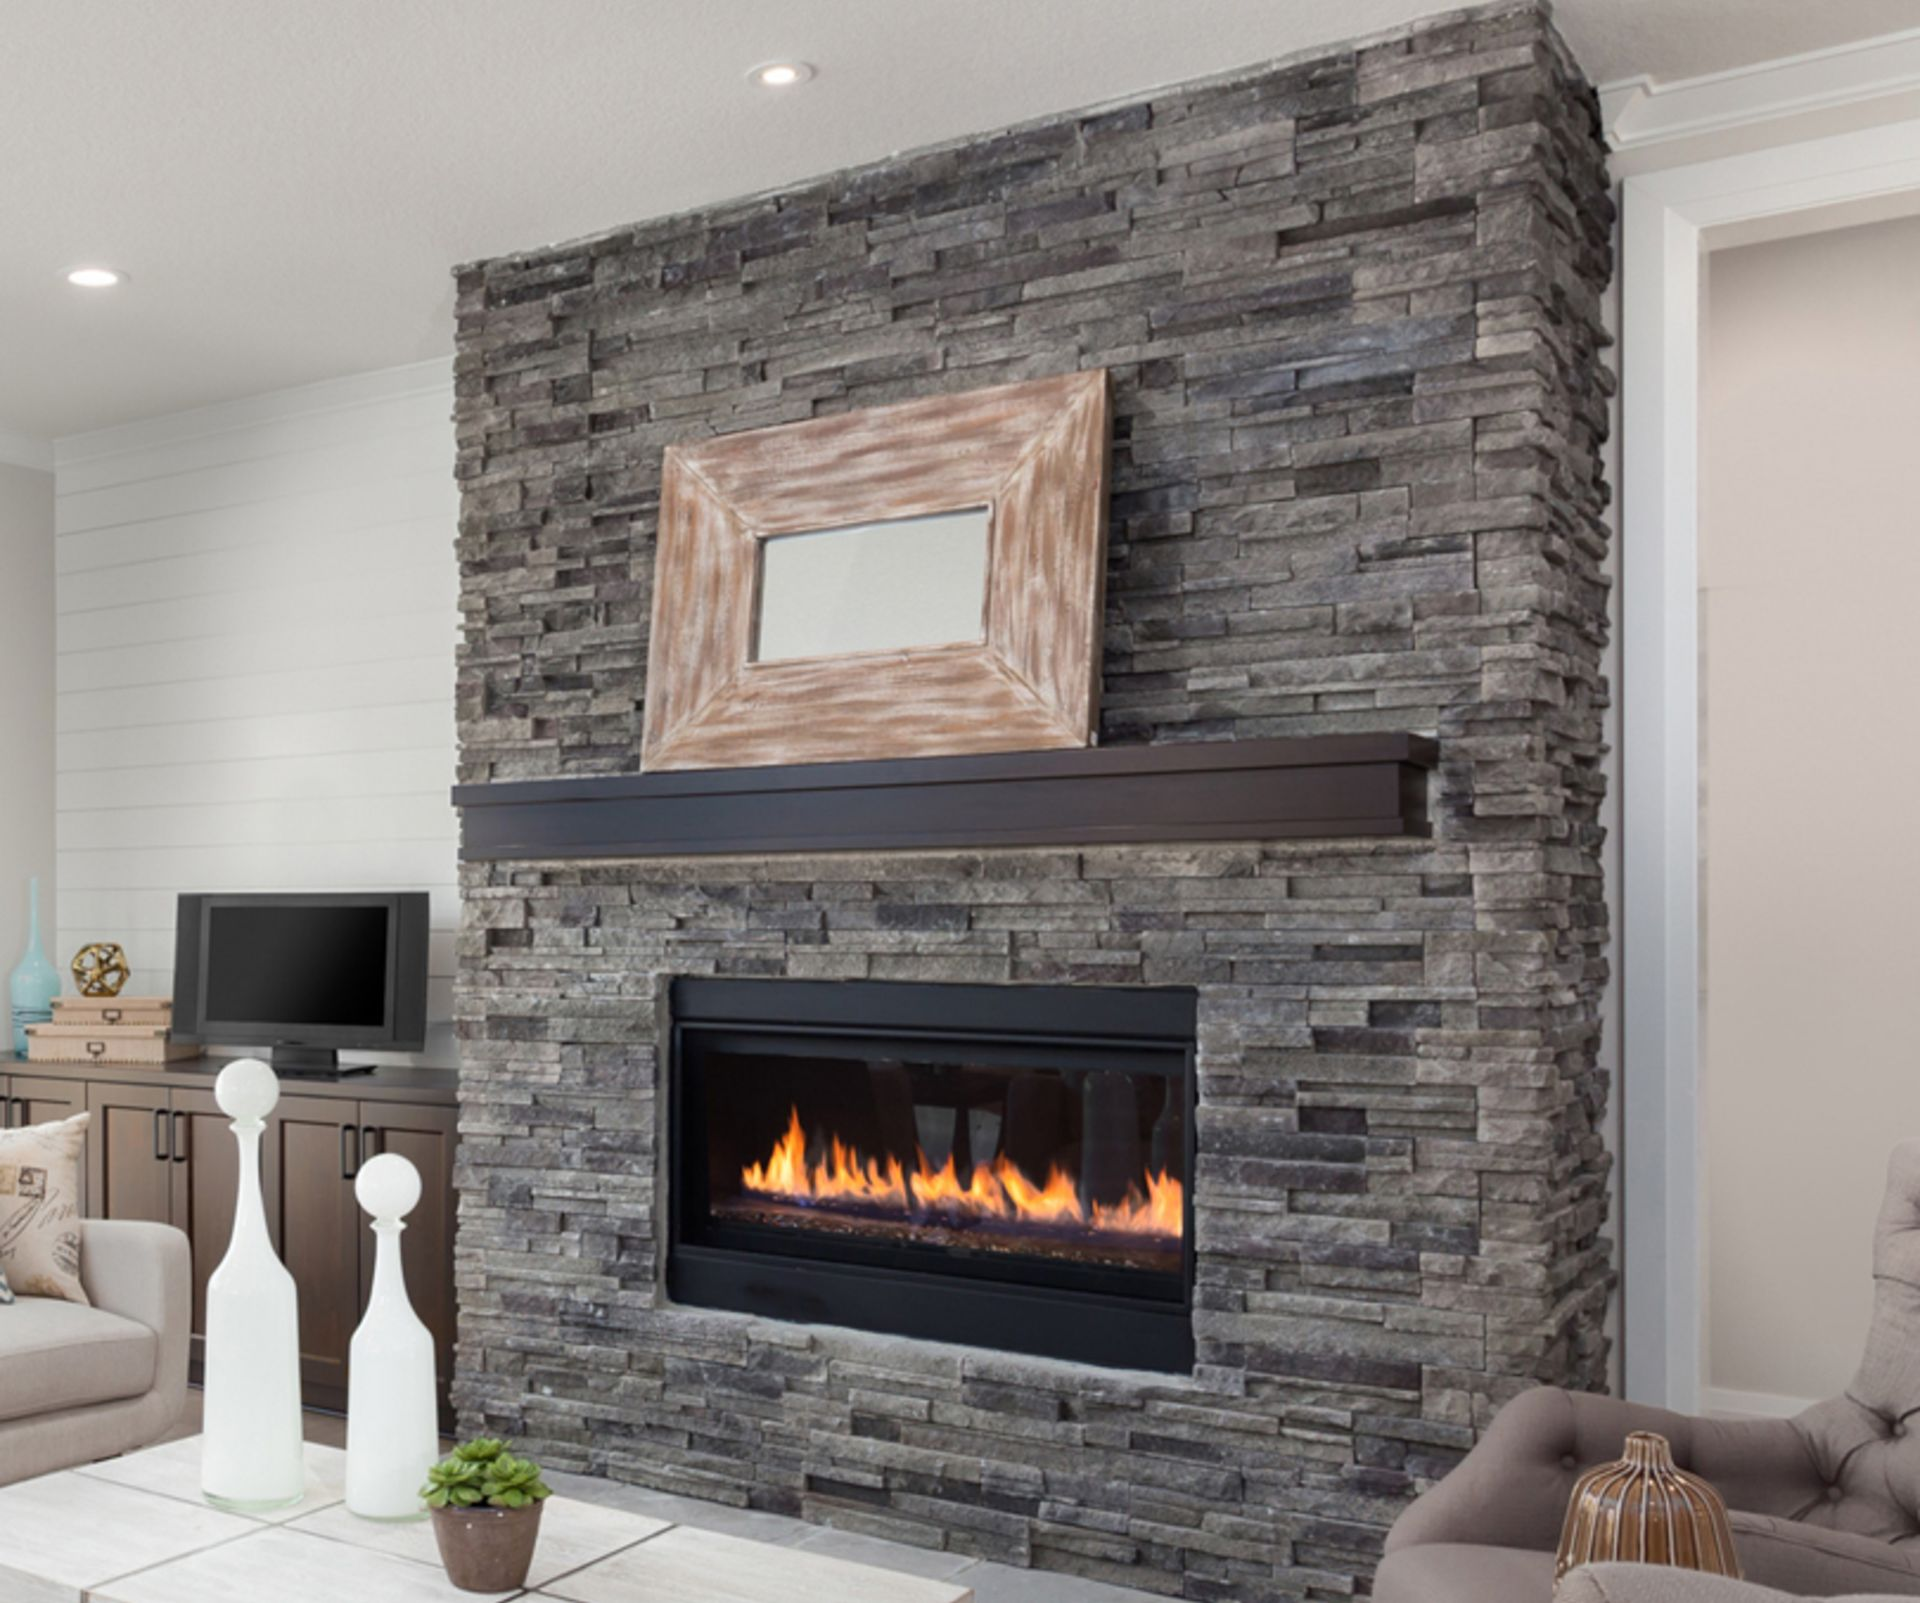 Fireplace Tips to Stay warm this Winter